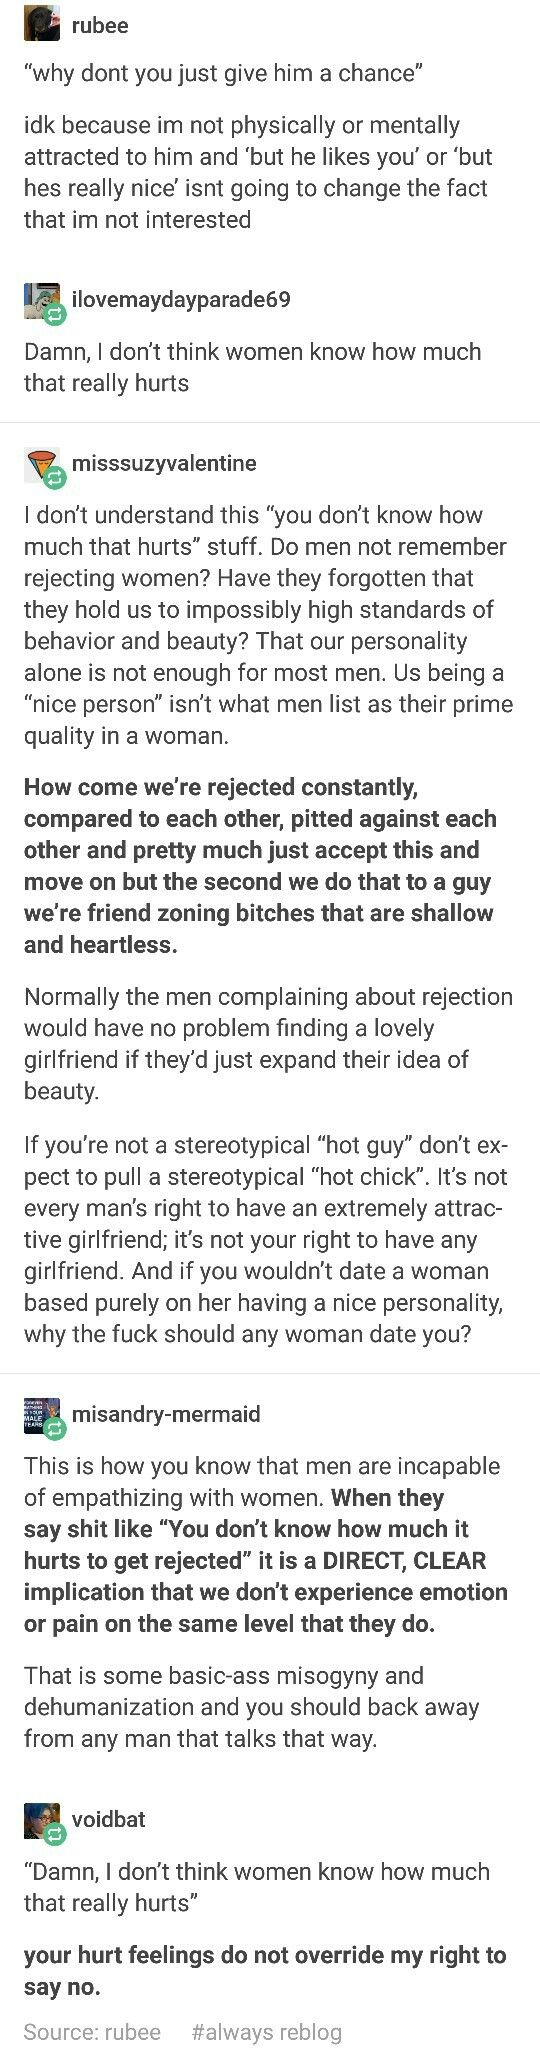 All of this. ALL of it. ESPECIALLY the parts about dehumanizing a perfectly nice woman with a good personality just because she isn't living up to that idealized archtype in your head.